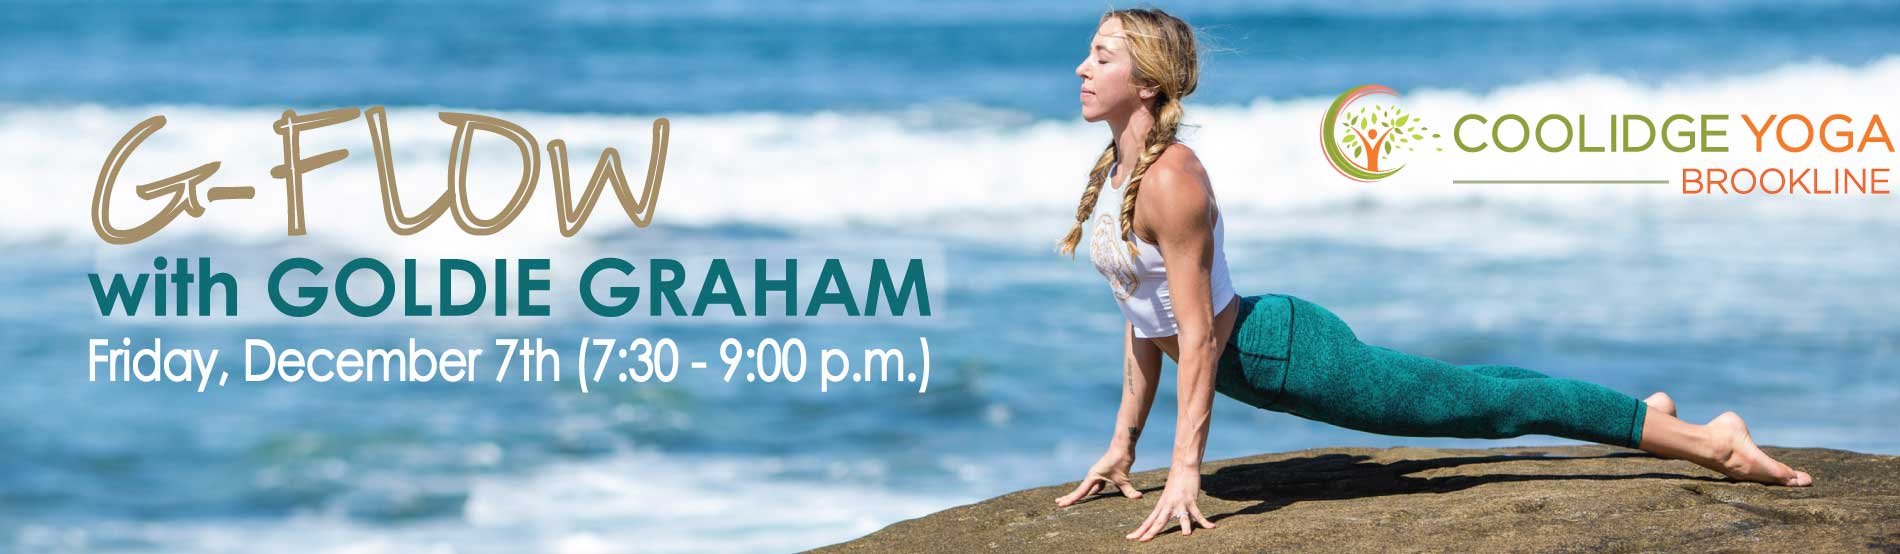 G-Flow - with Goldie Graham at Coolidge Yoga